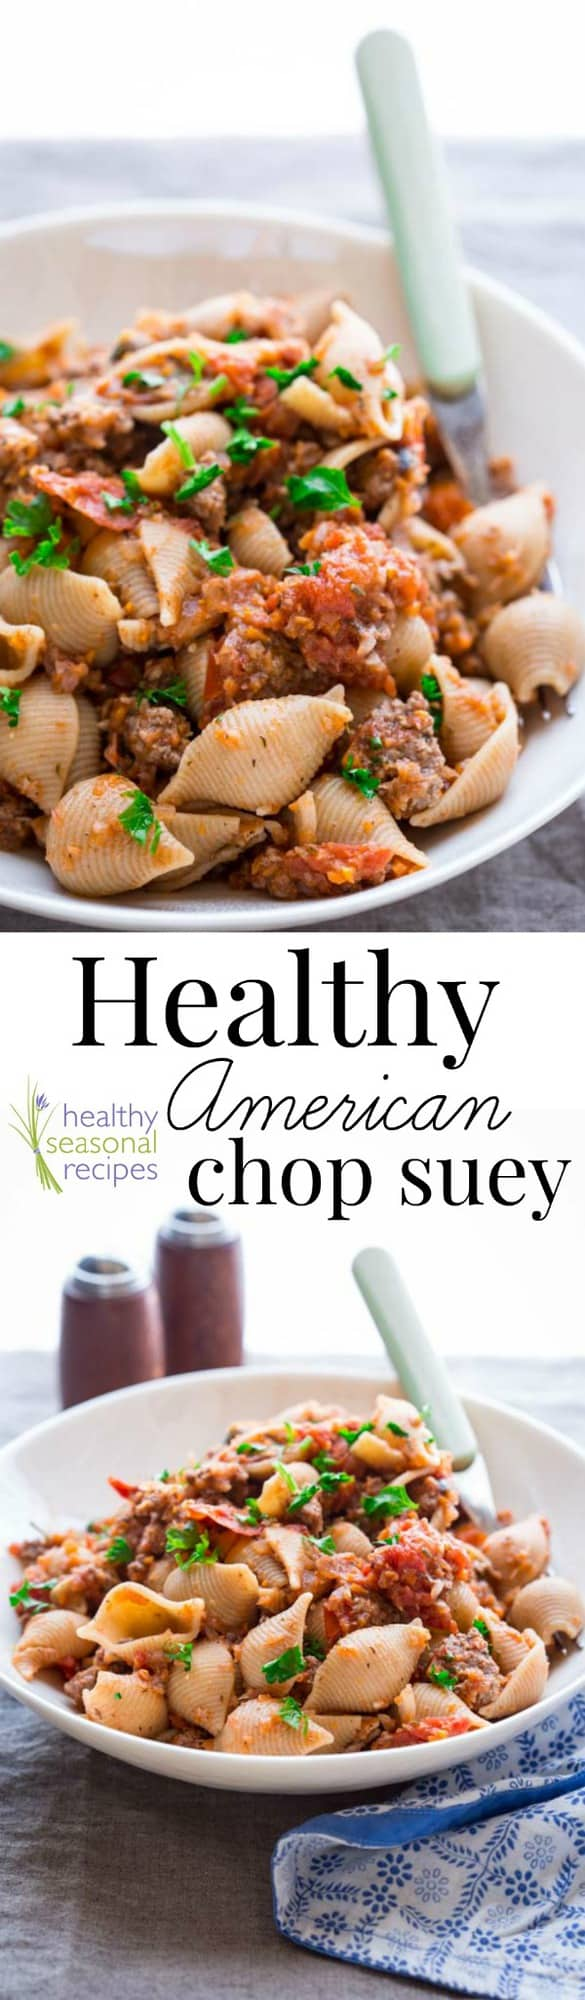 Healthy american chop suey healthy seasonal recipes healthy stove top macaroni and cheese with kale forumfinder Images